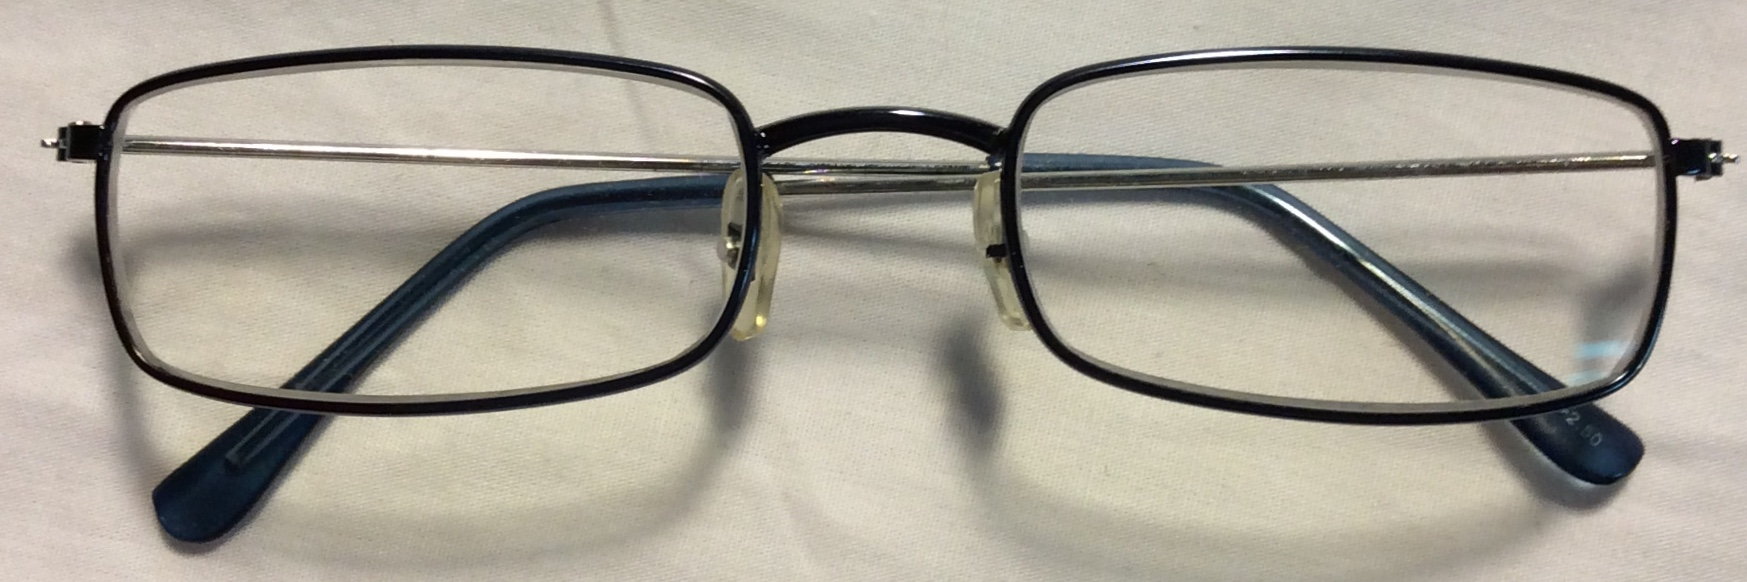 Thin silver metal frames, light blue